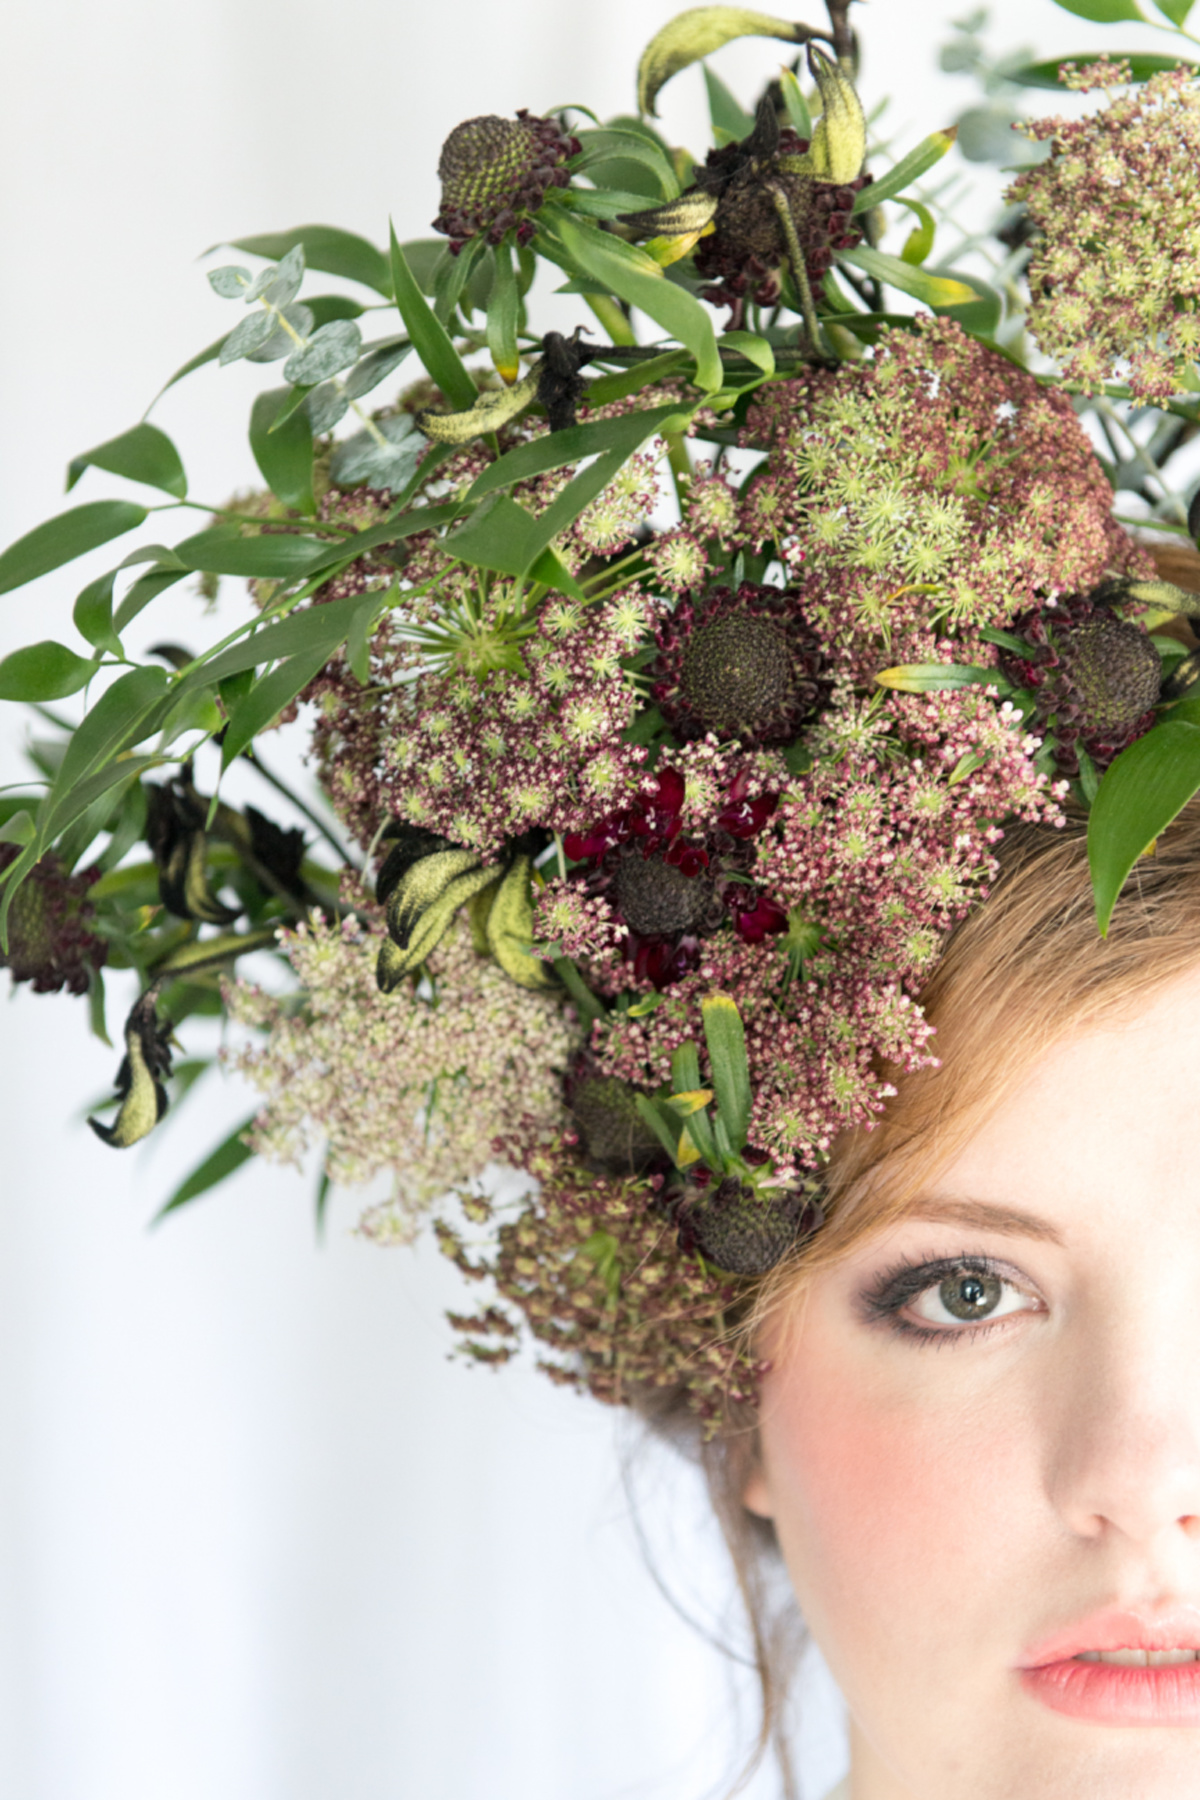 half of a lady's face looking at the camera with flowers in her hair